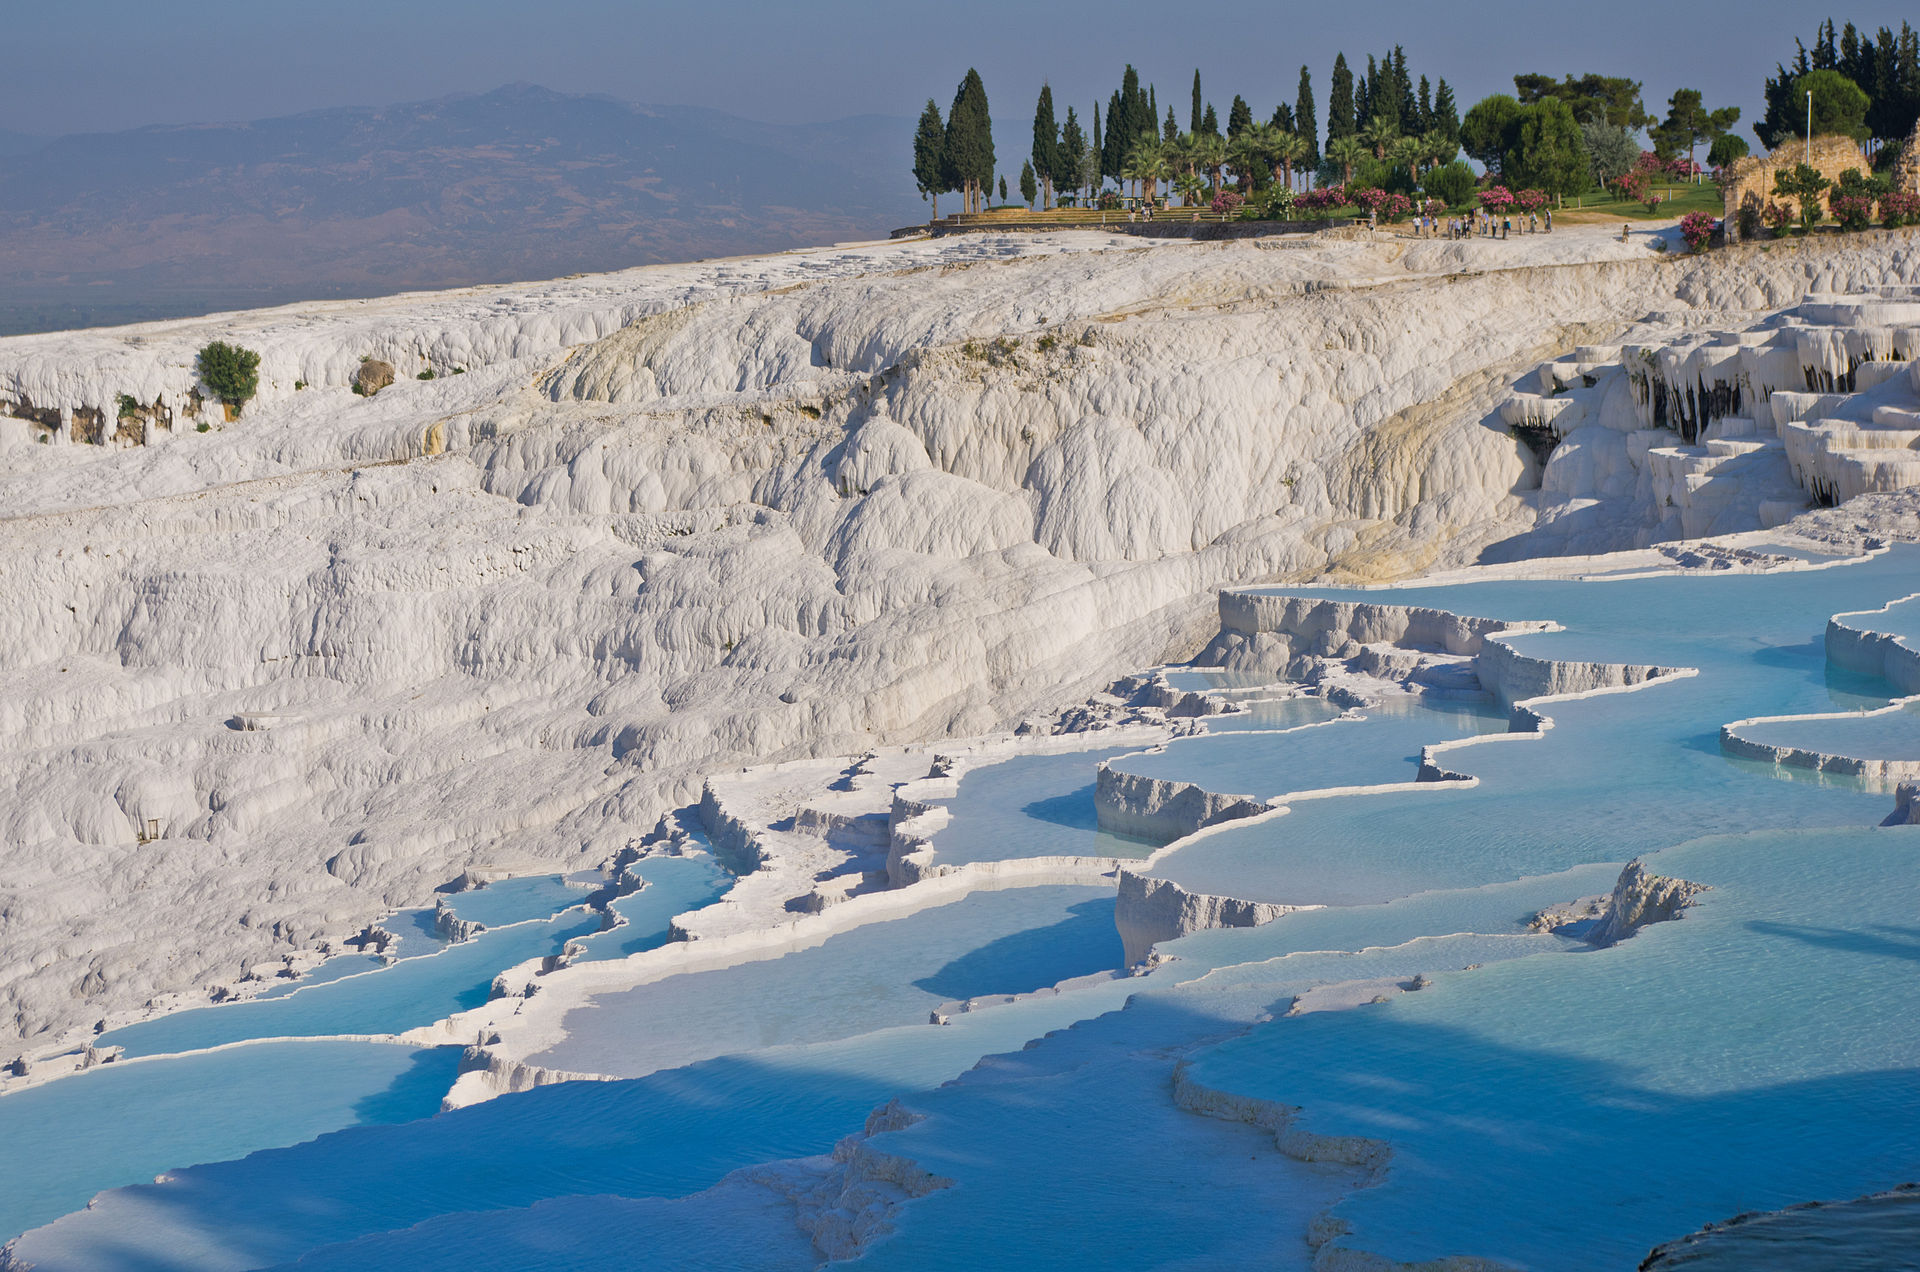 1001 Places I'd Like to Visit Before I Die #8 - Pamukkale 1